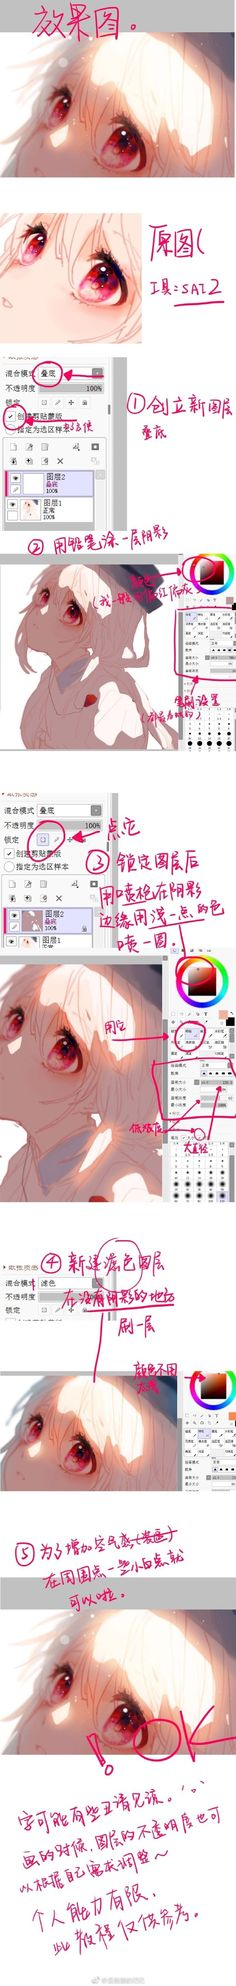 I just wanted understand something Digital Painting Tutorials, Digital Art Tutorial, Art Tutorials, Drawing Tutorials, Digital Paintings, Art Sketches, Art Drawings, M Anime, Anime Eyes